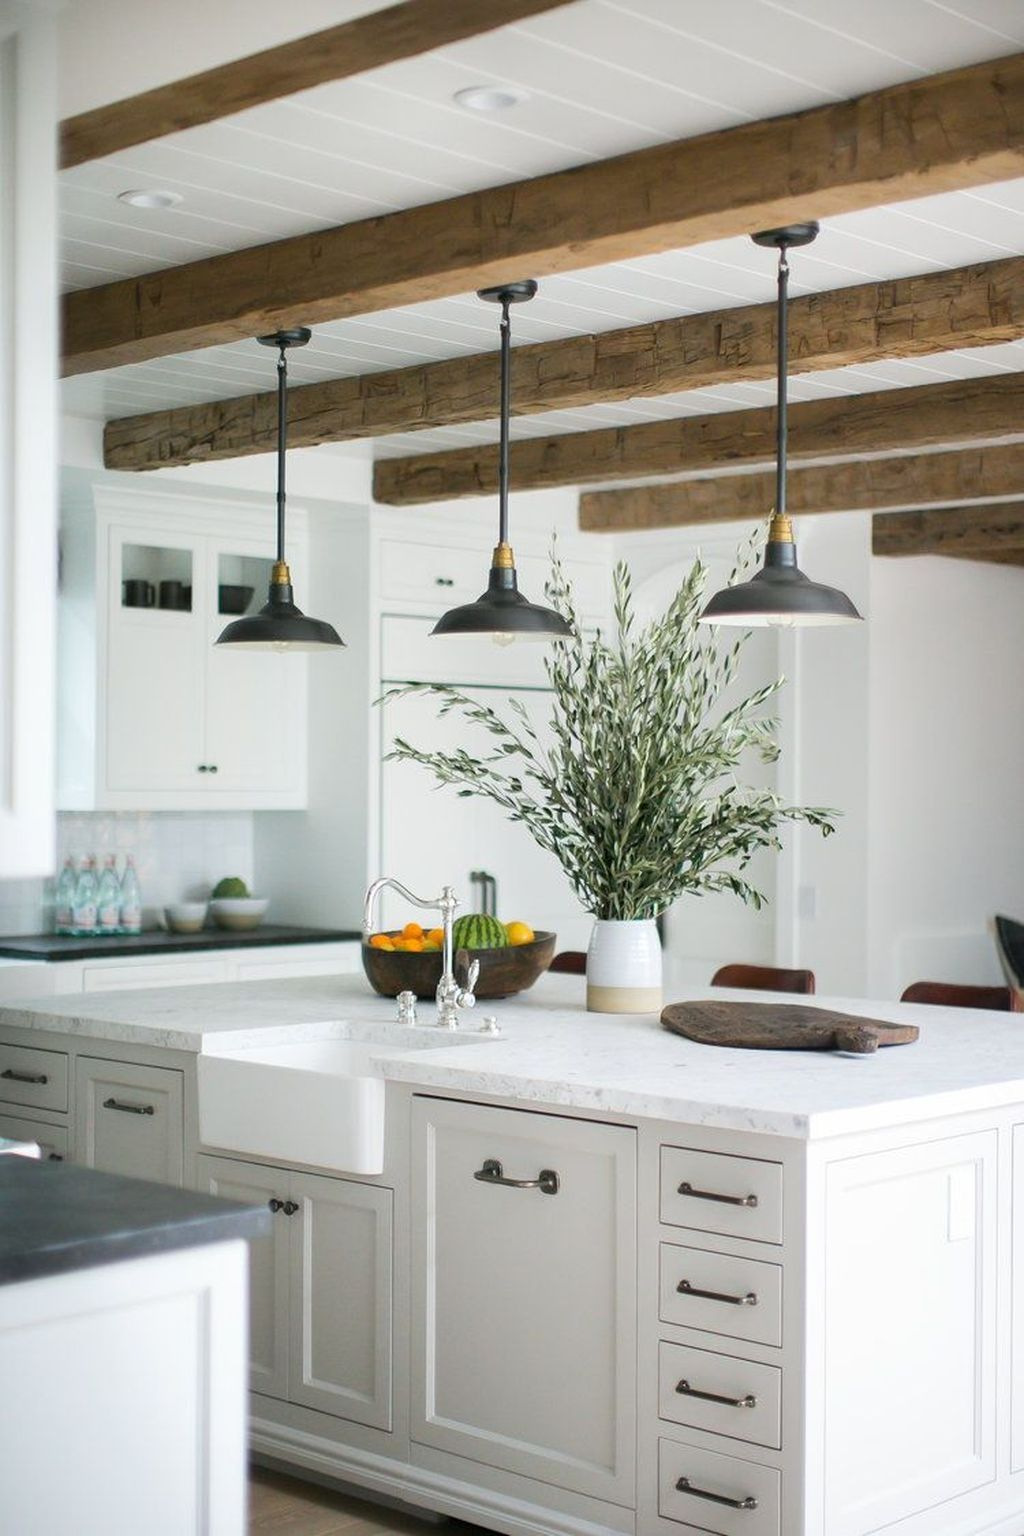 50 Affordable White Wood Beams Ceiling Ideas For Cottage - Kitchen island decor, Interior design kitchen, Kitchen interior, Kitchen ceiling, Modern farmhouse kitchens, Kitchen remodel - A very common type of wood ceiling is the coffered ceiling   wood beams in a pattern with wood panels …